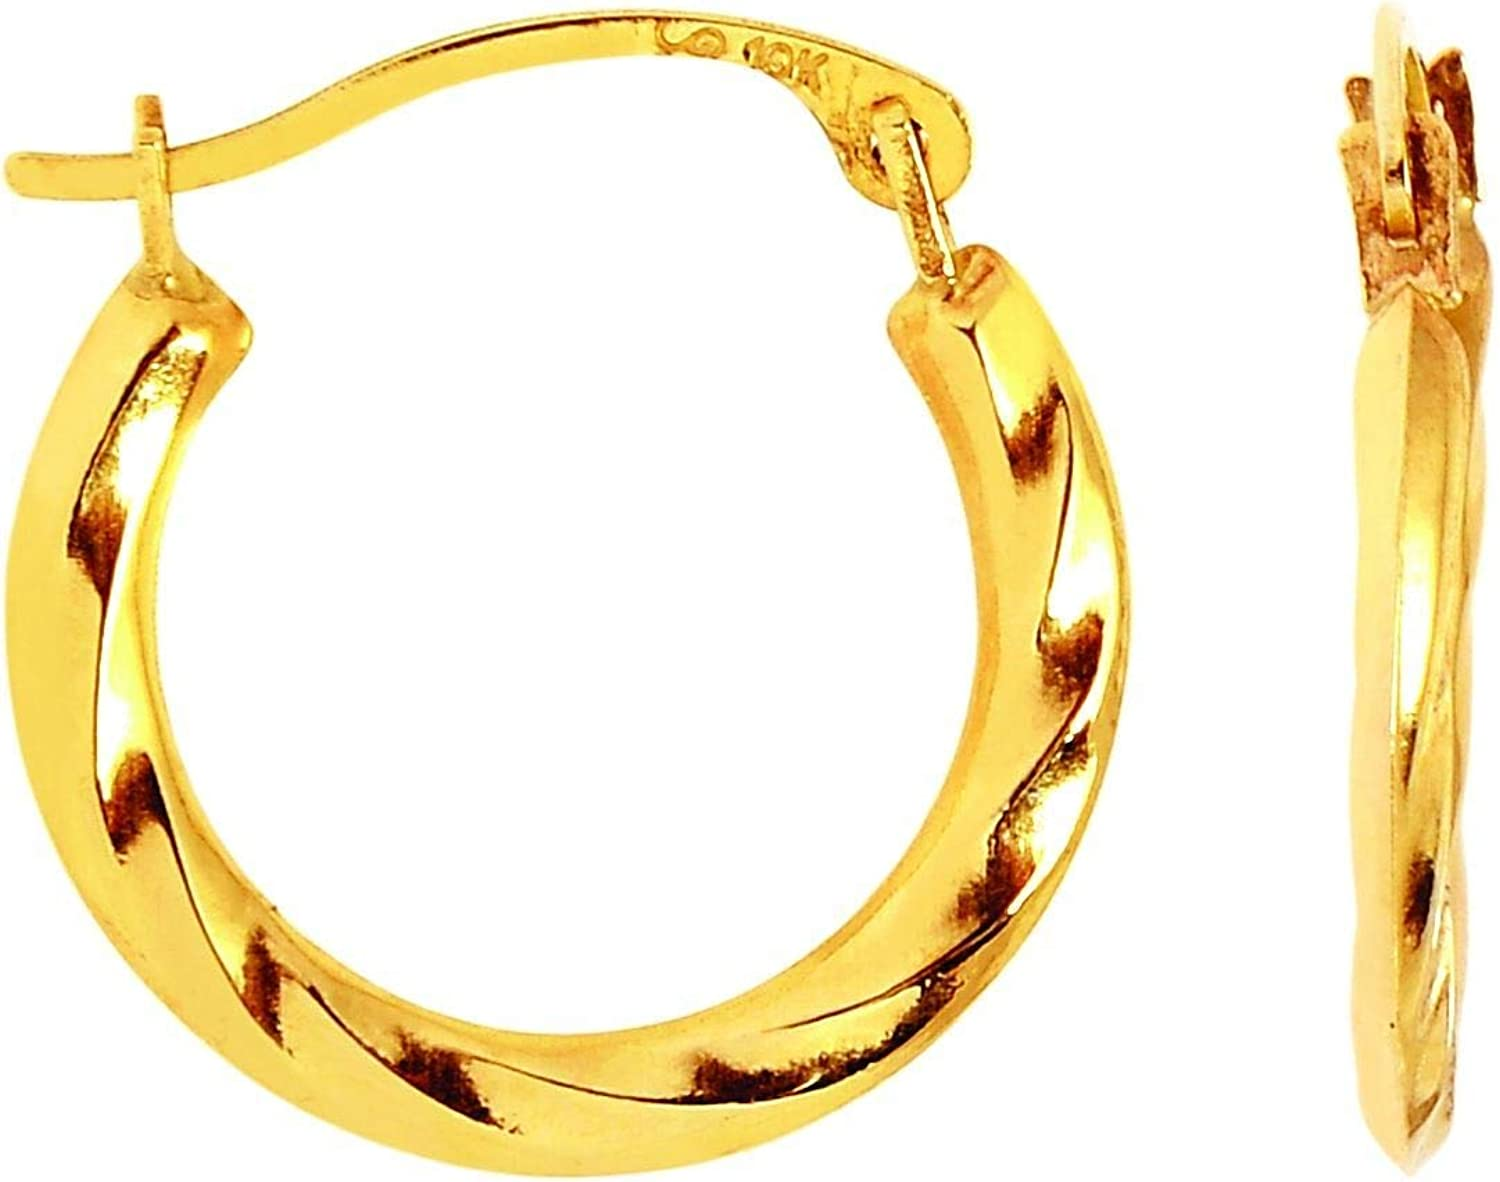 10K Yellow Gold Twisted Hoop Earring with with Hinged Clasp